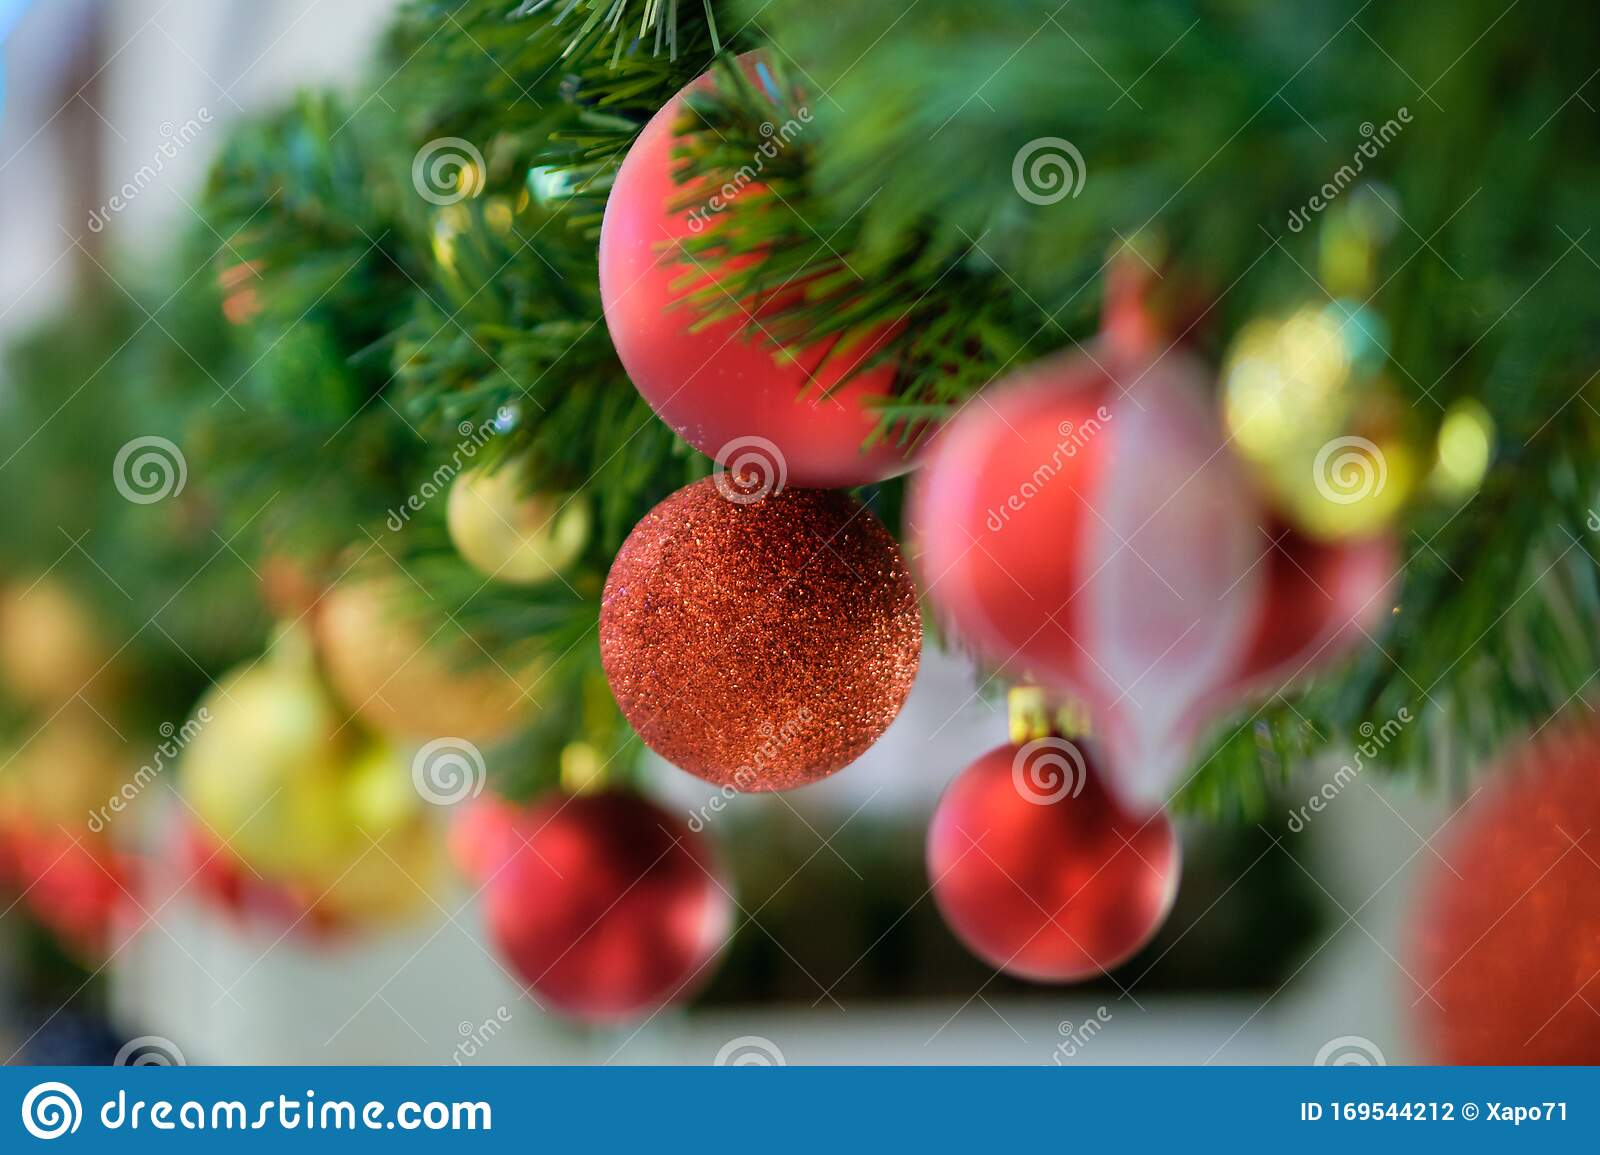 Christmas Decorations Red And Gold Balloons Branch Stock Photo Image Of Card Traditional 169544212